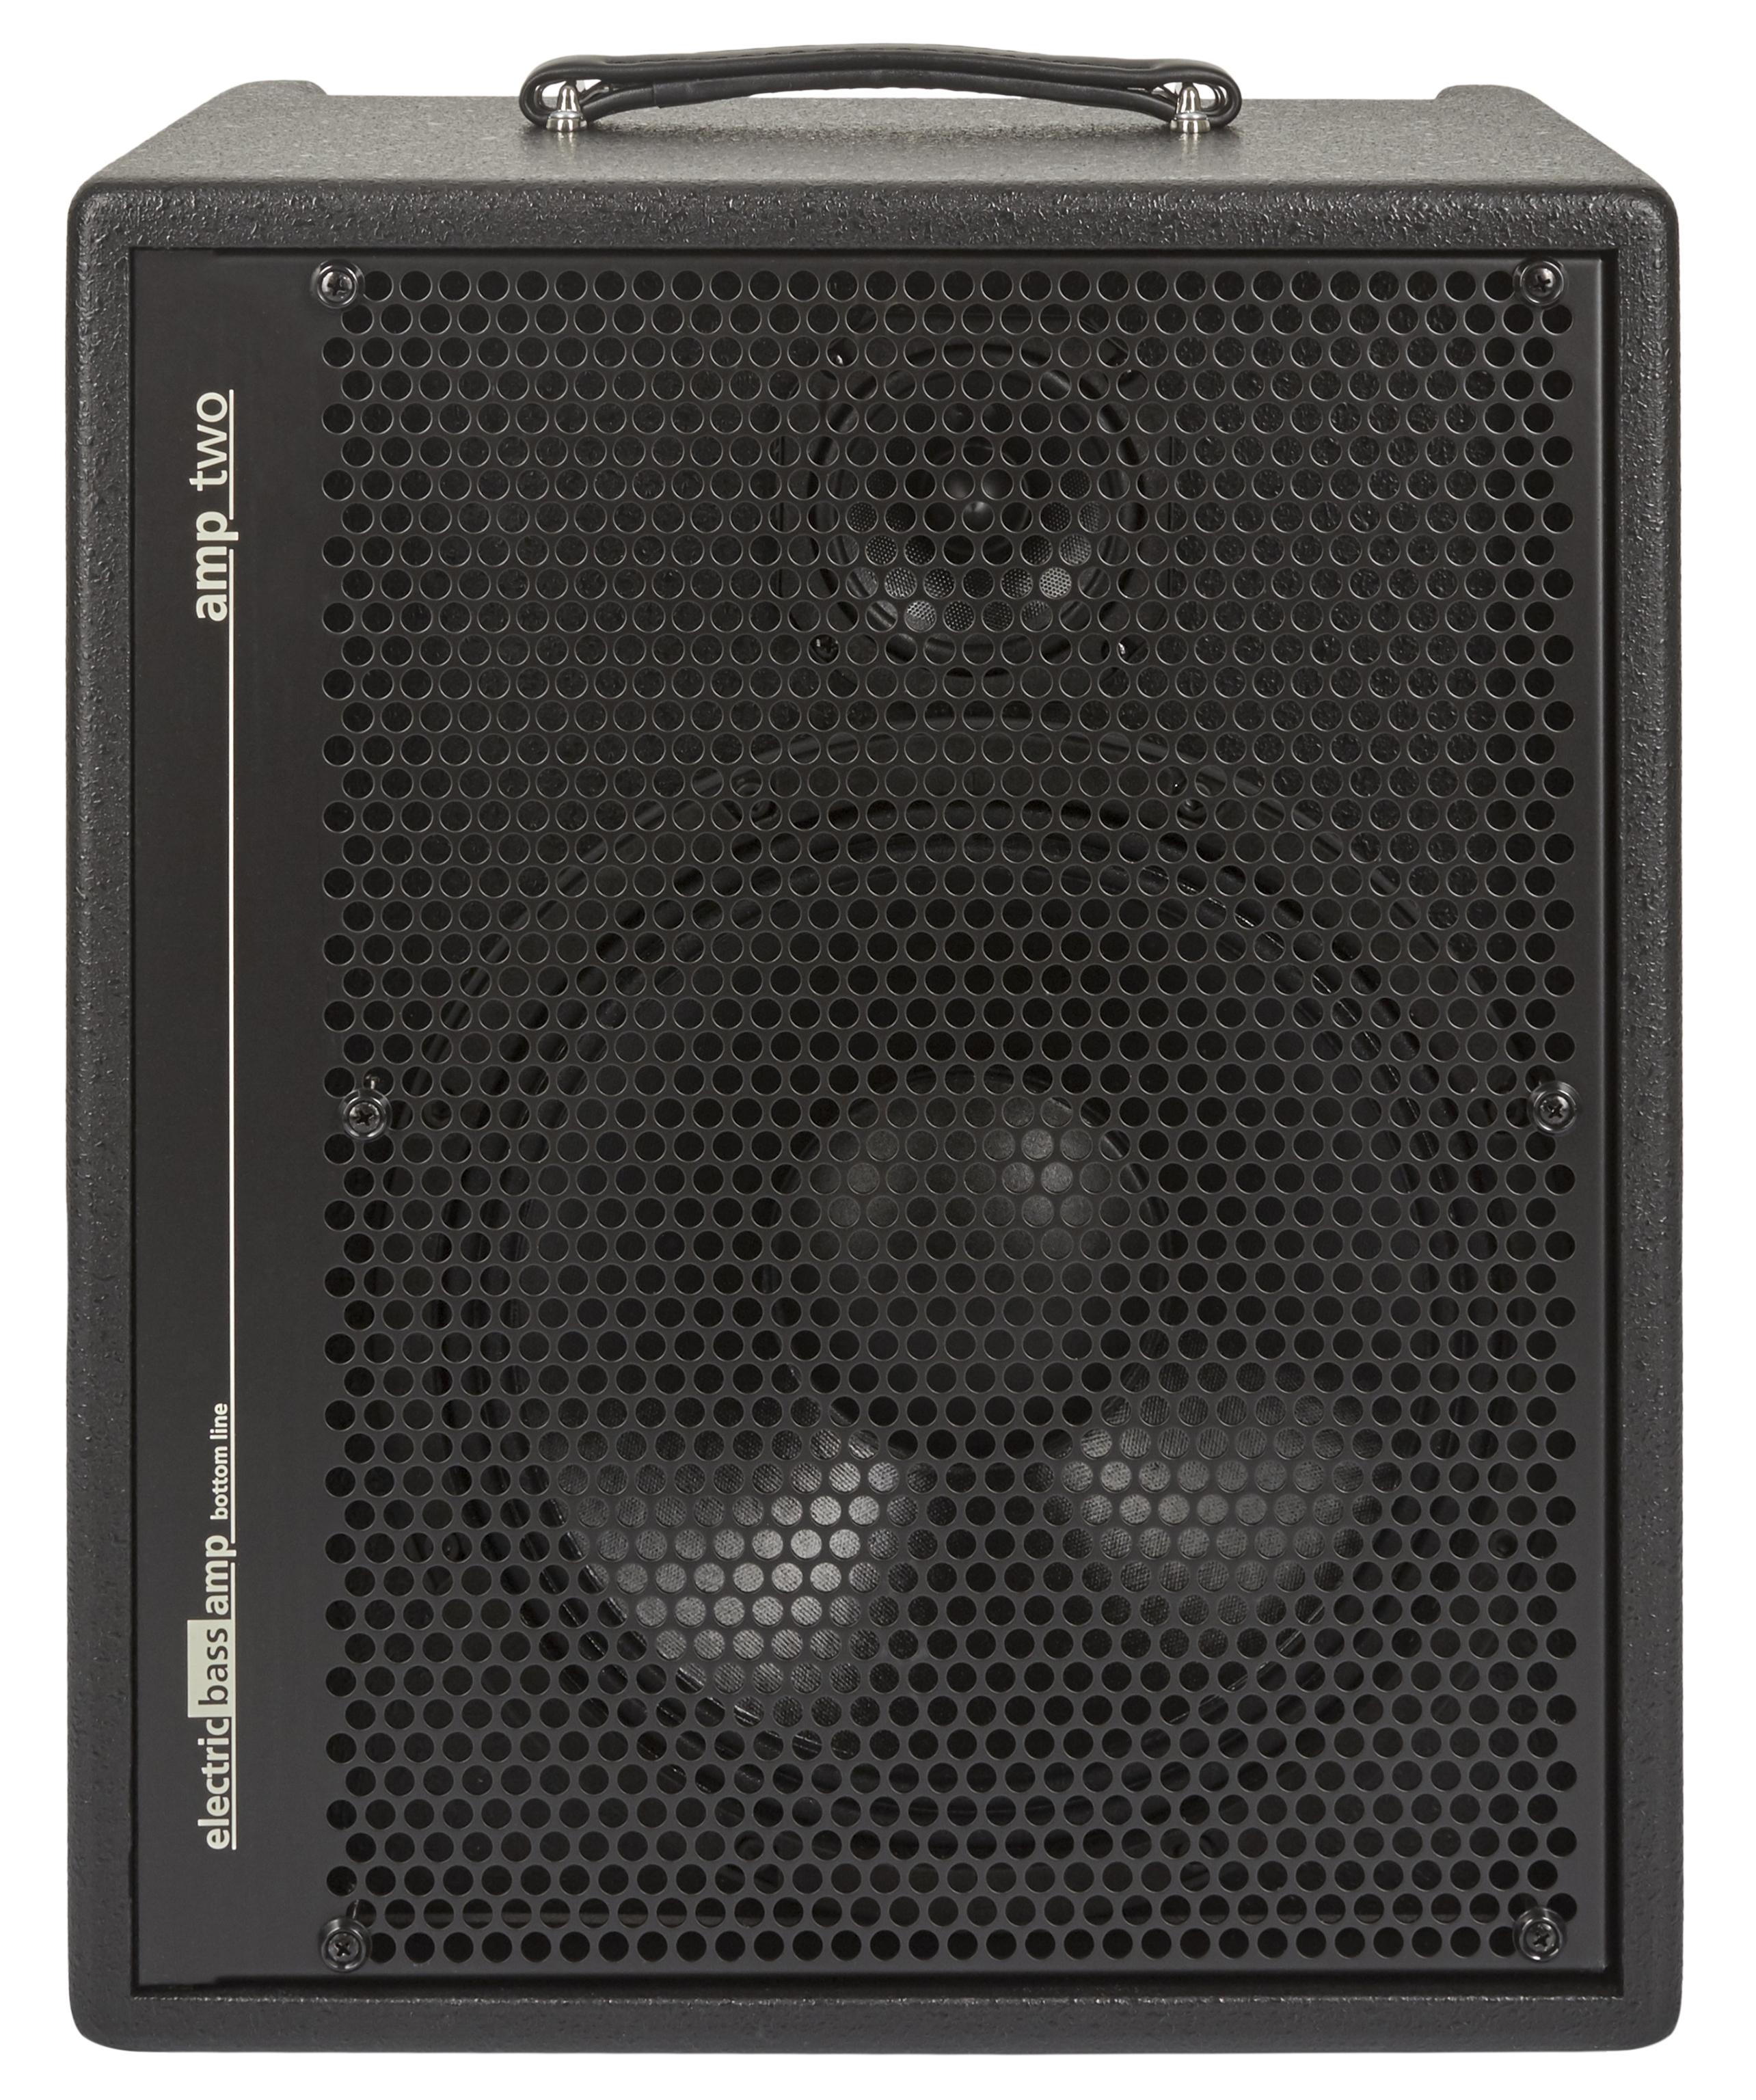 AER amp two